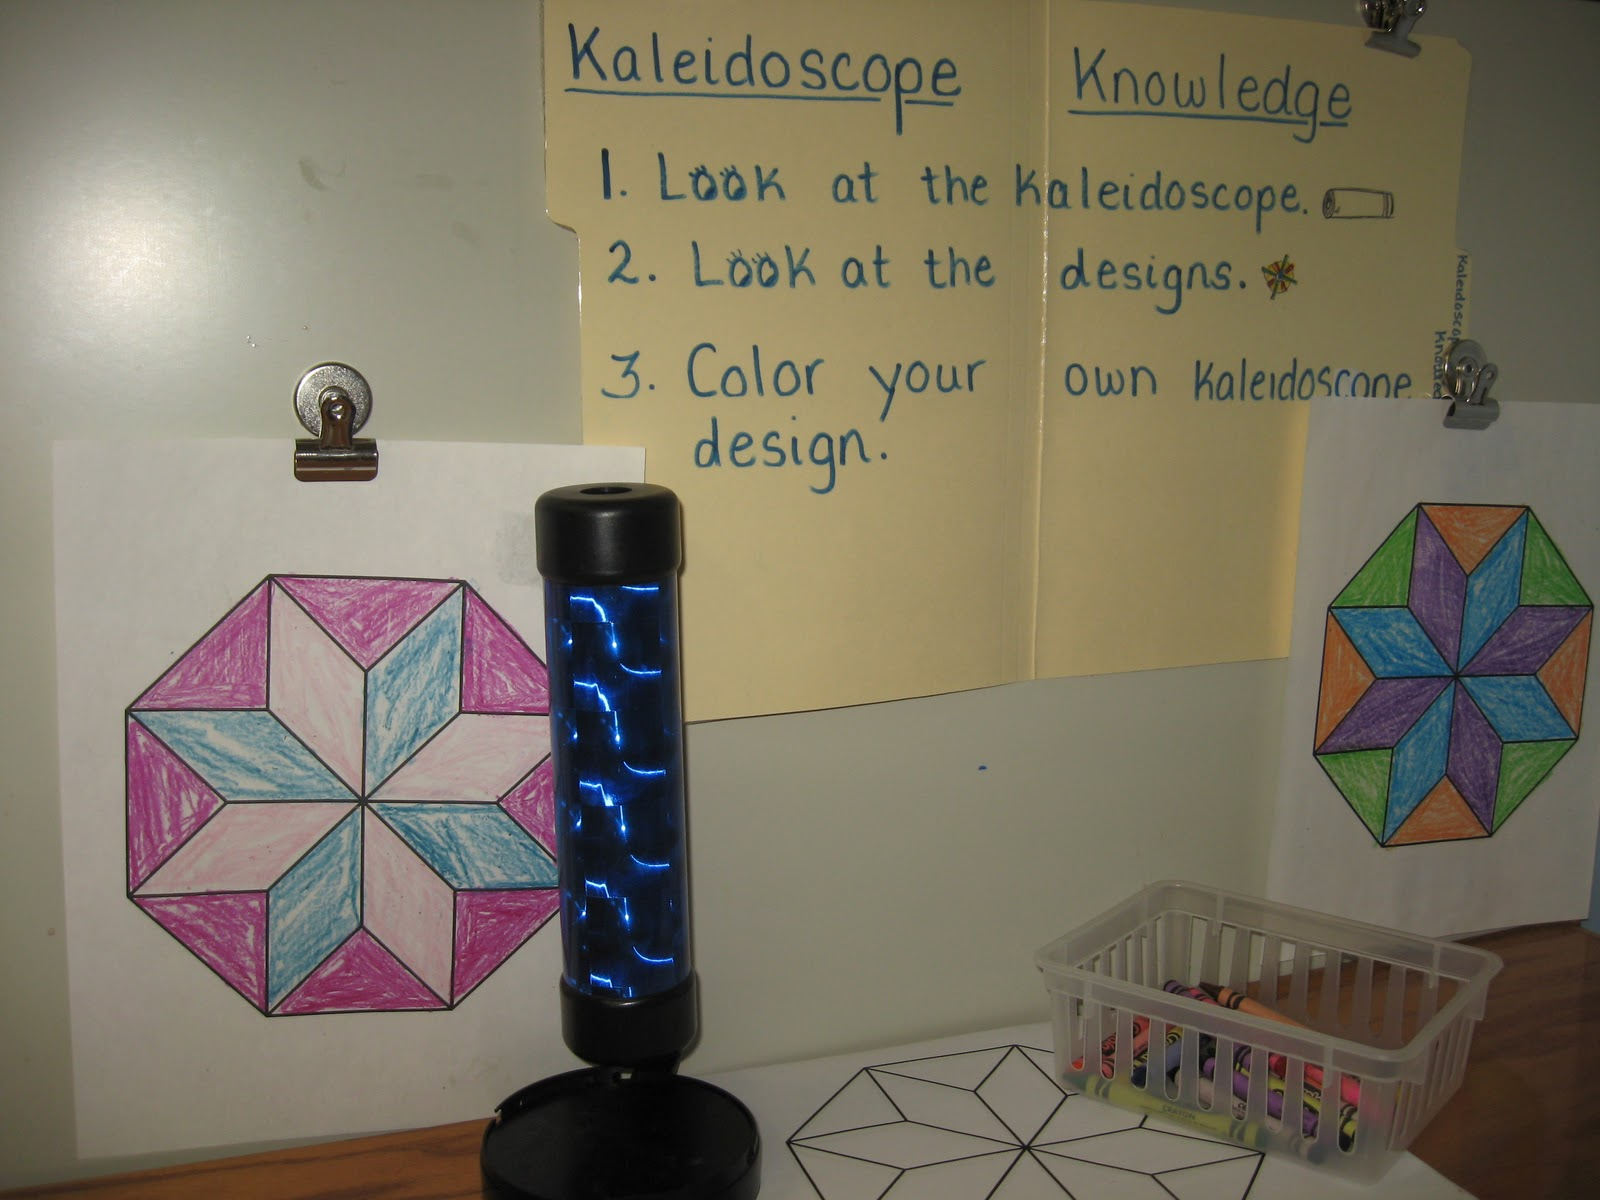 Metamora Community Preschool Kaleidoscope Knowledge